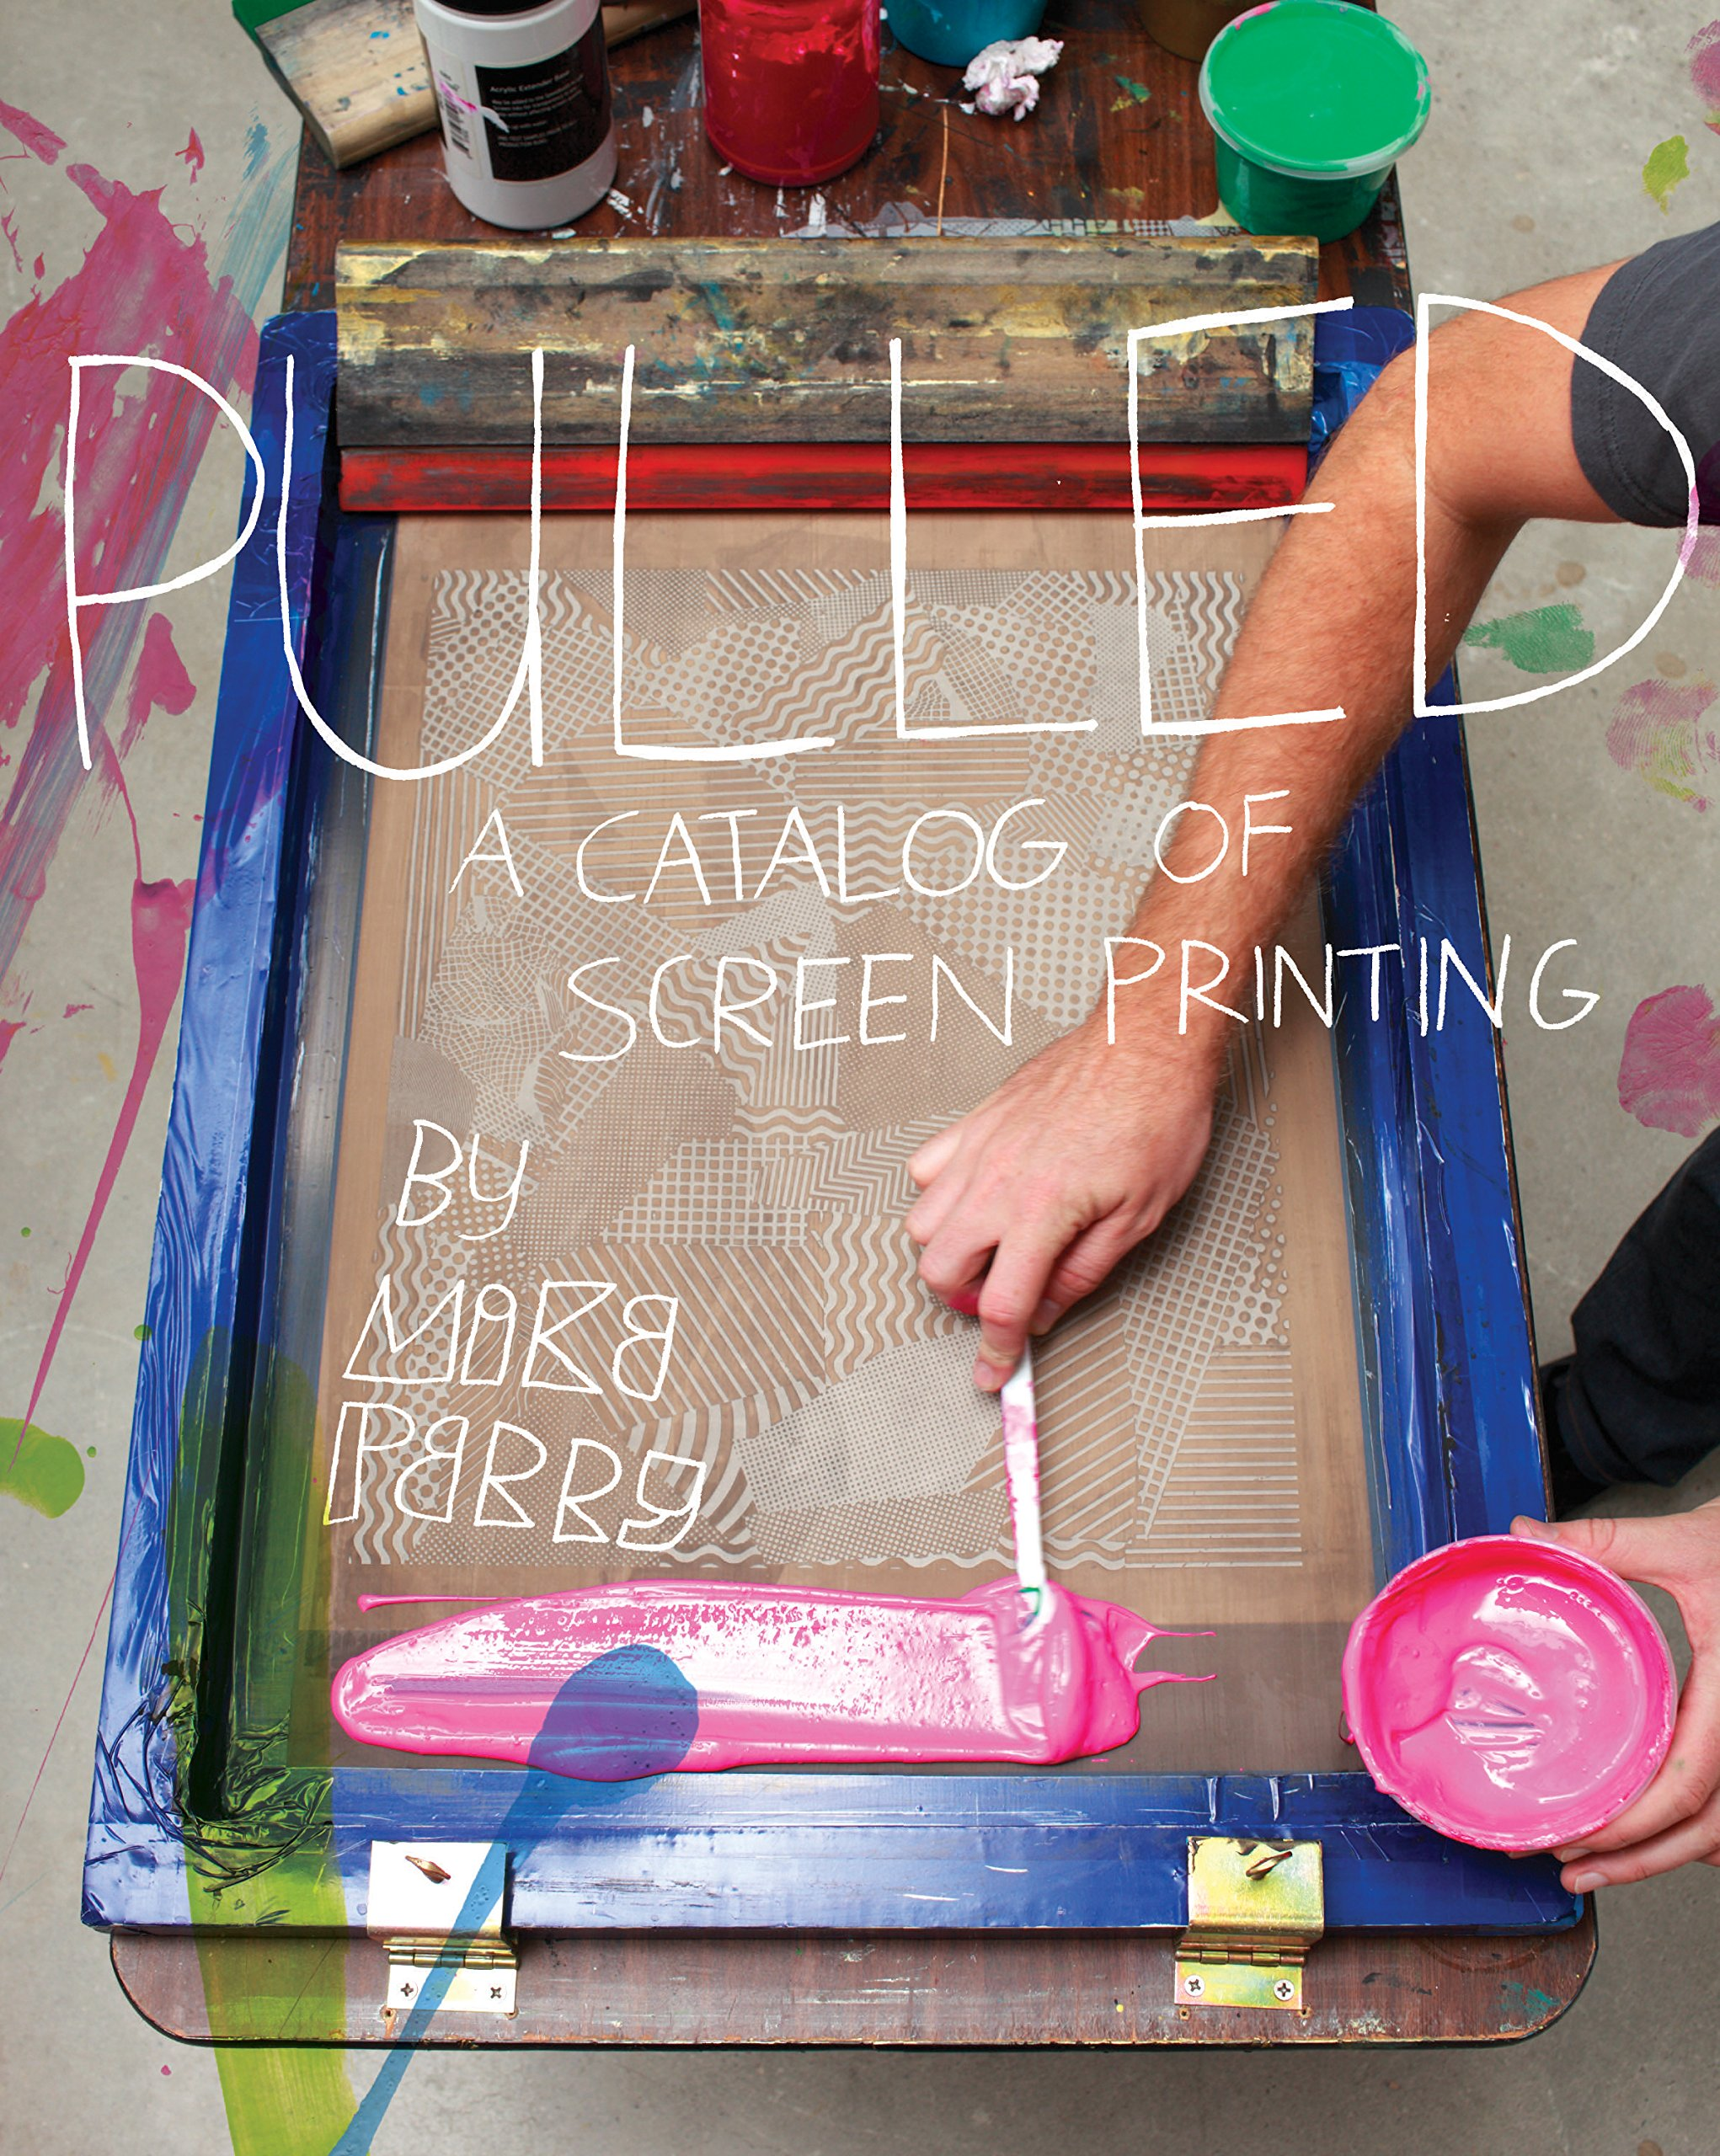 Download Pulled: A Catalog of Screen Printing PDF